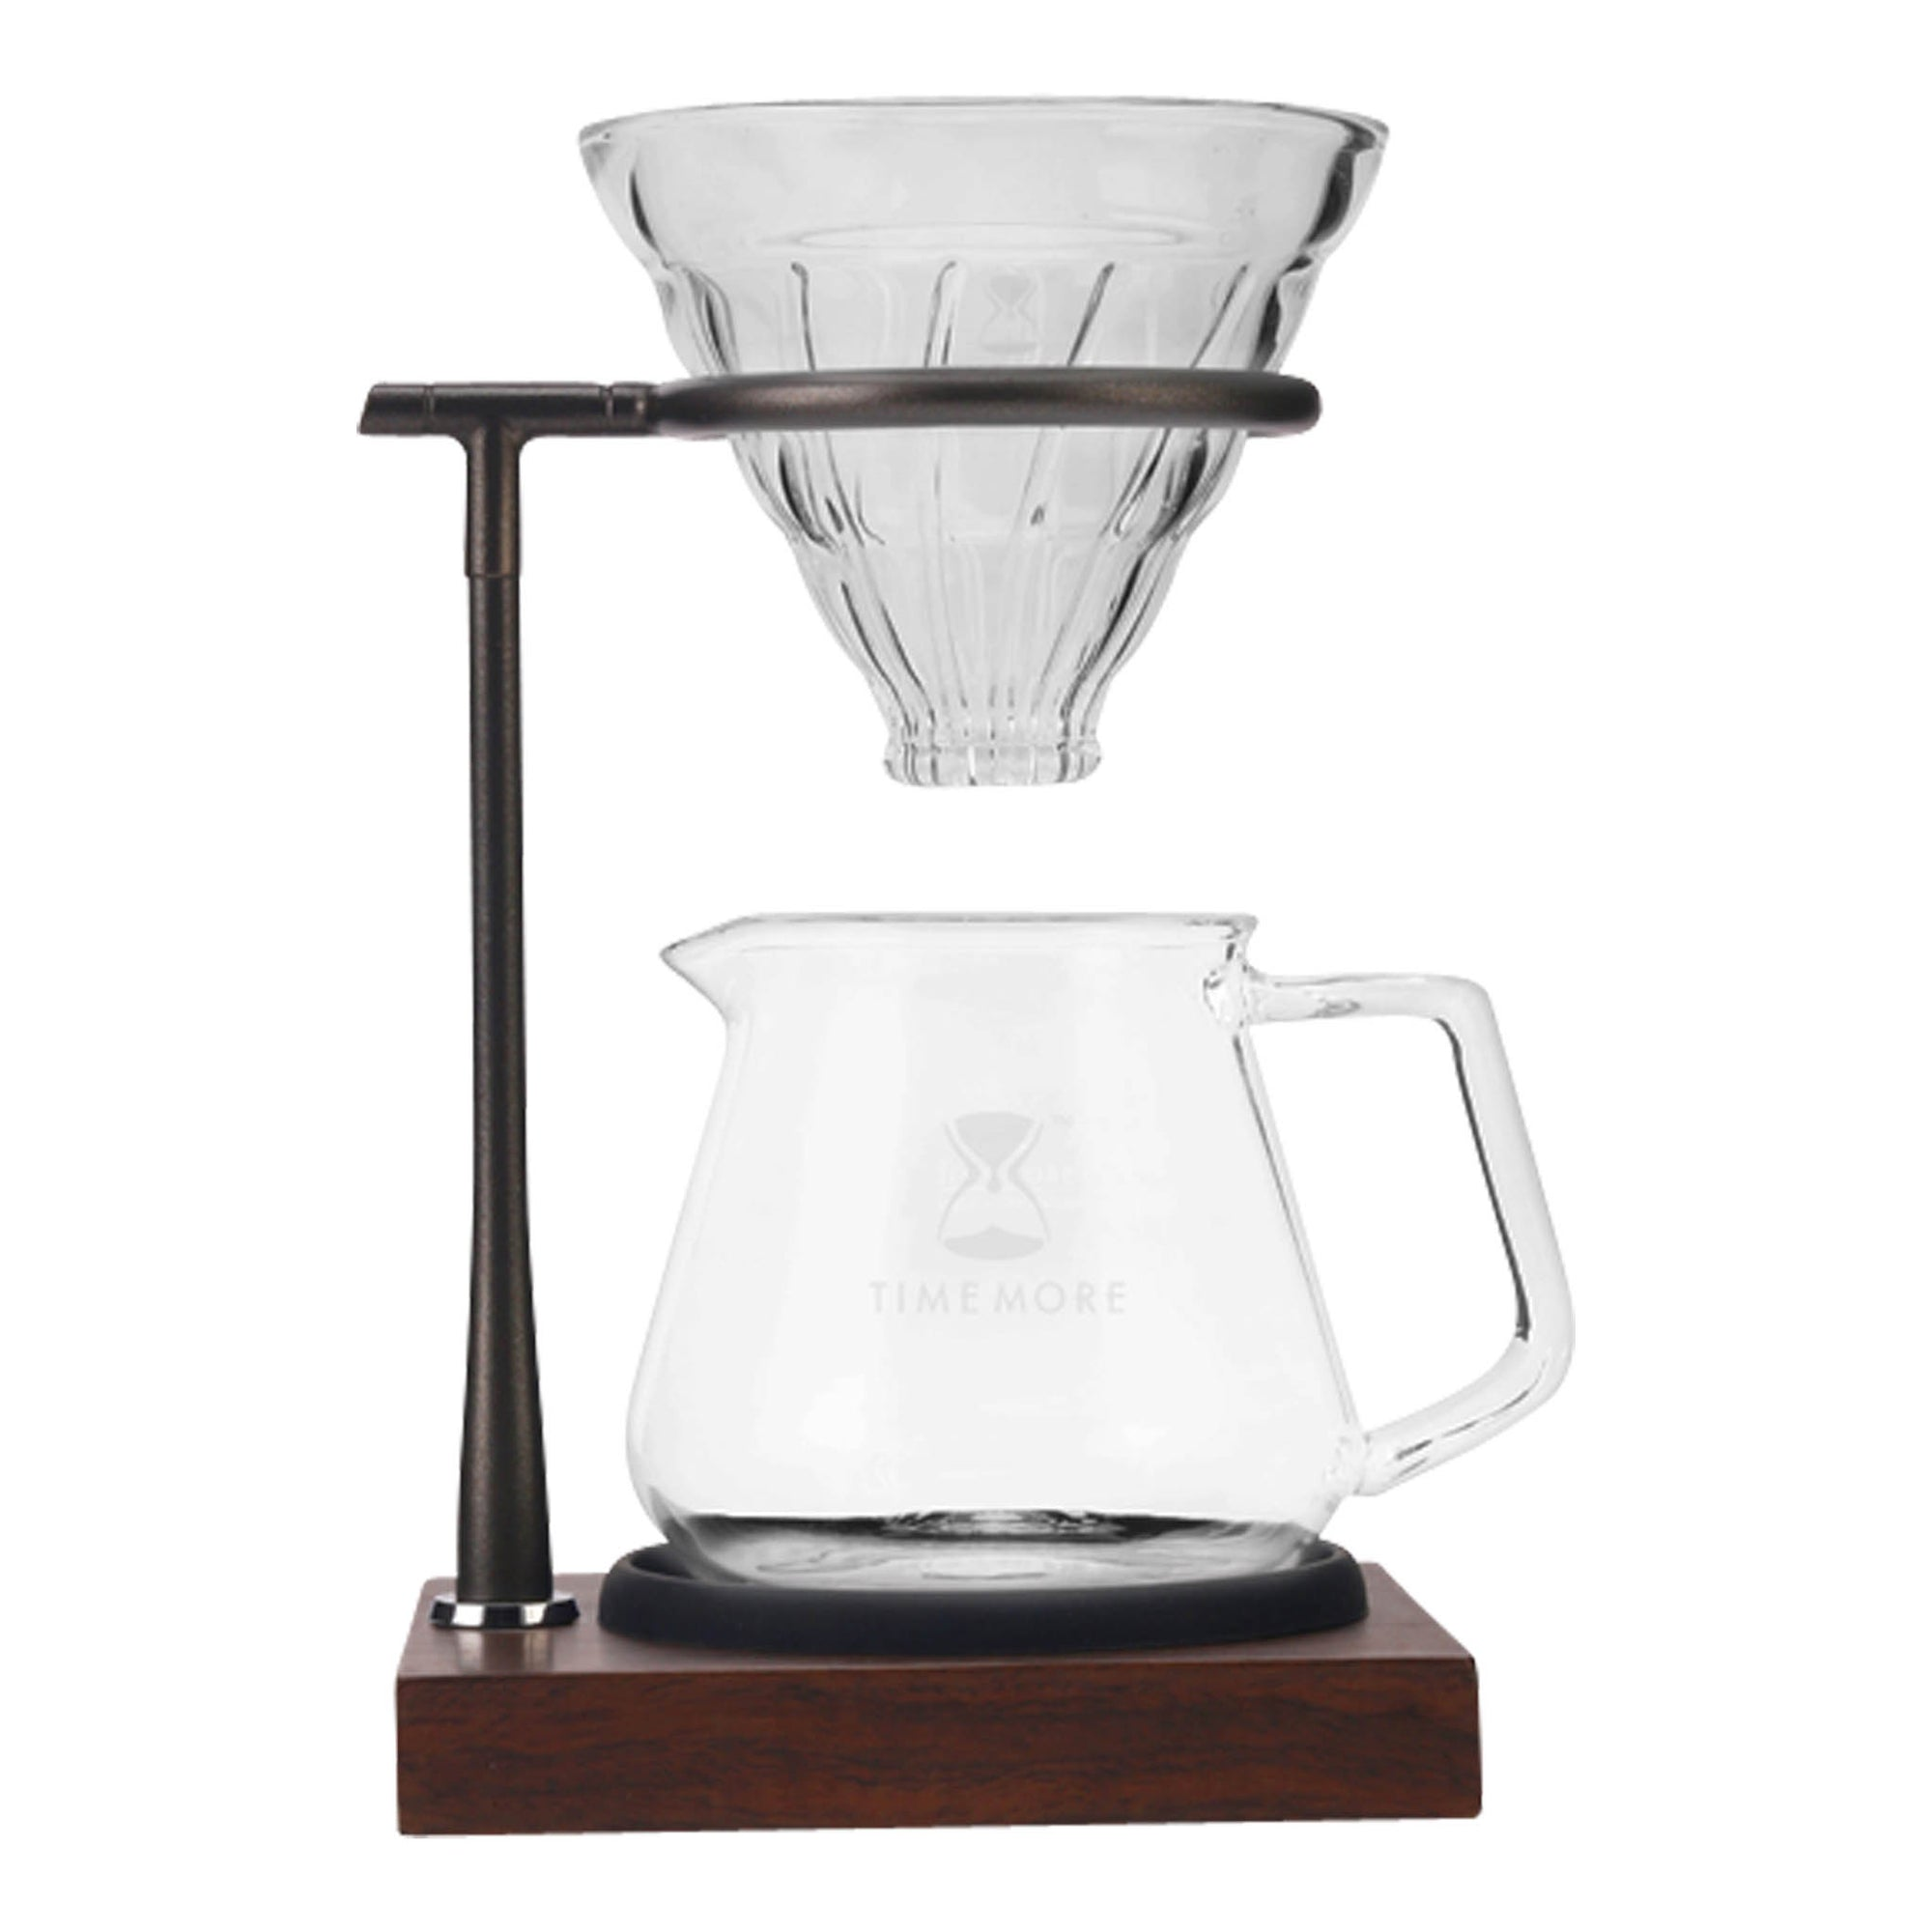 Timemore Dripstand wood - Espresso Gear